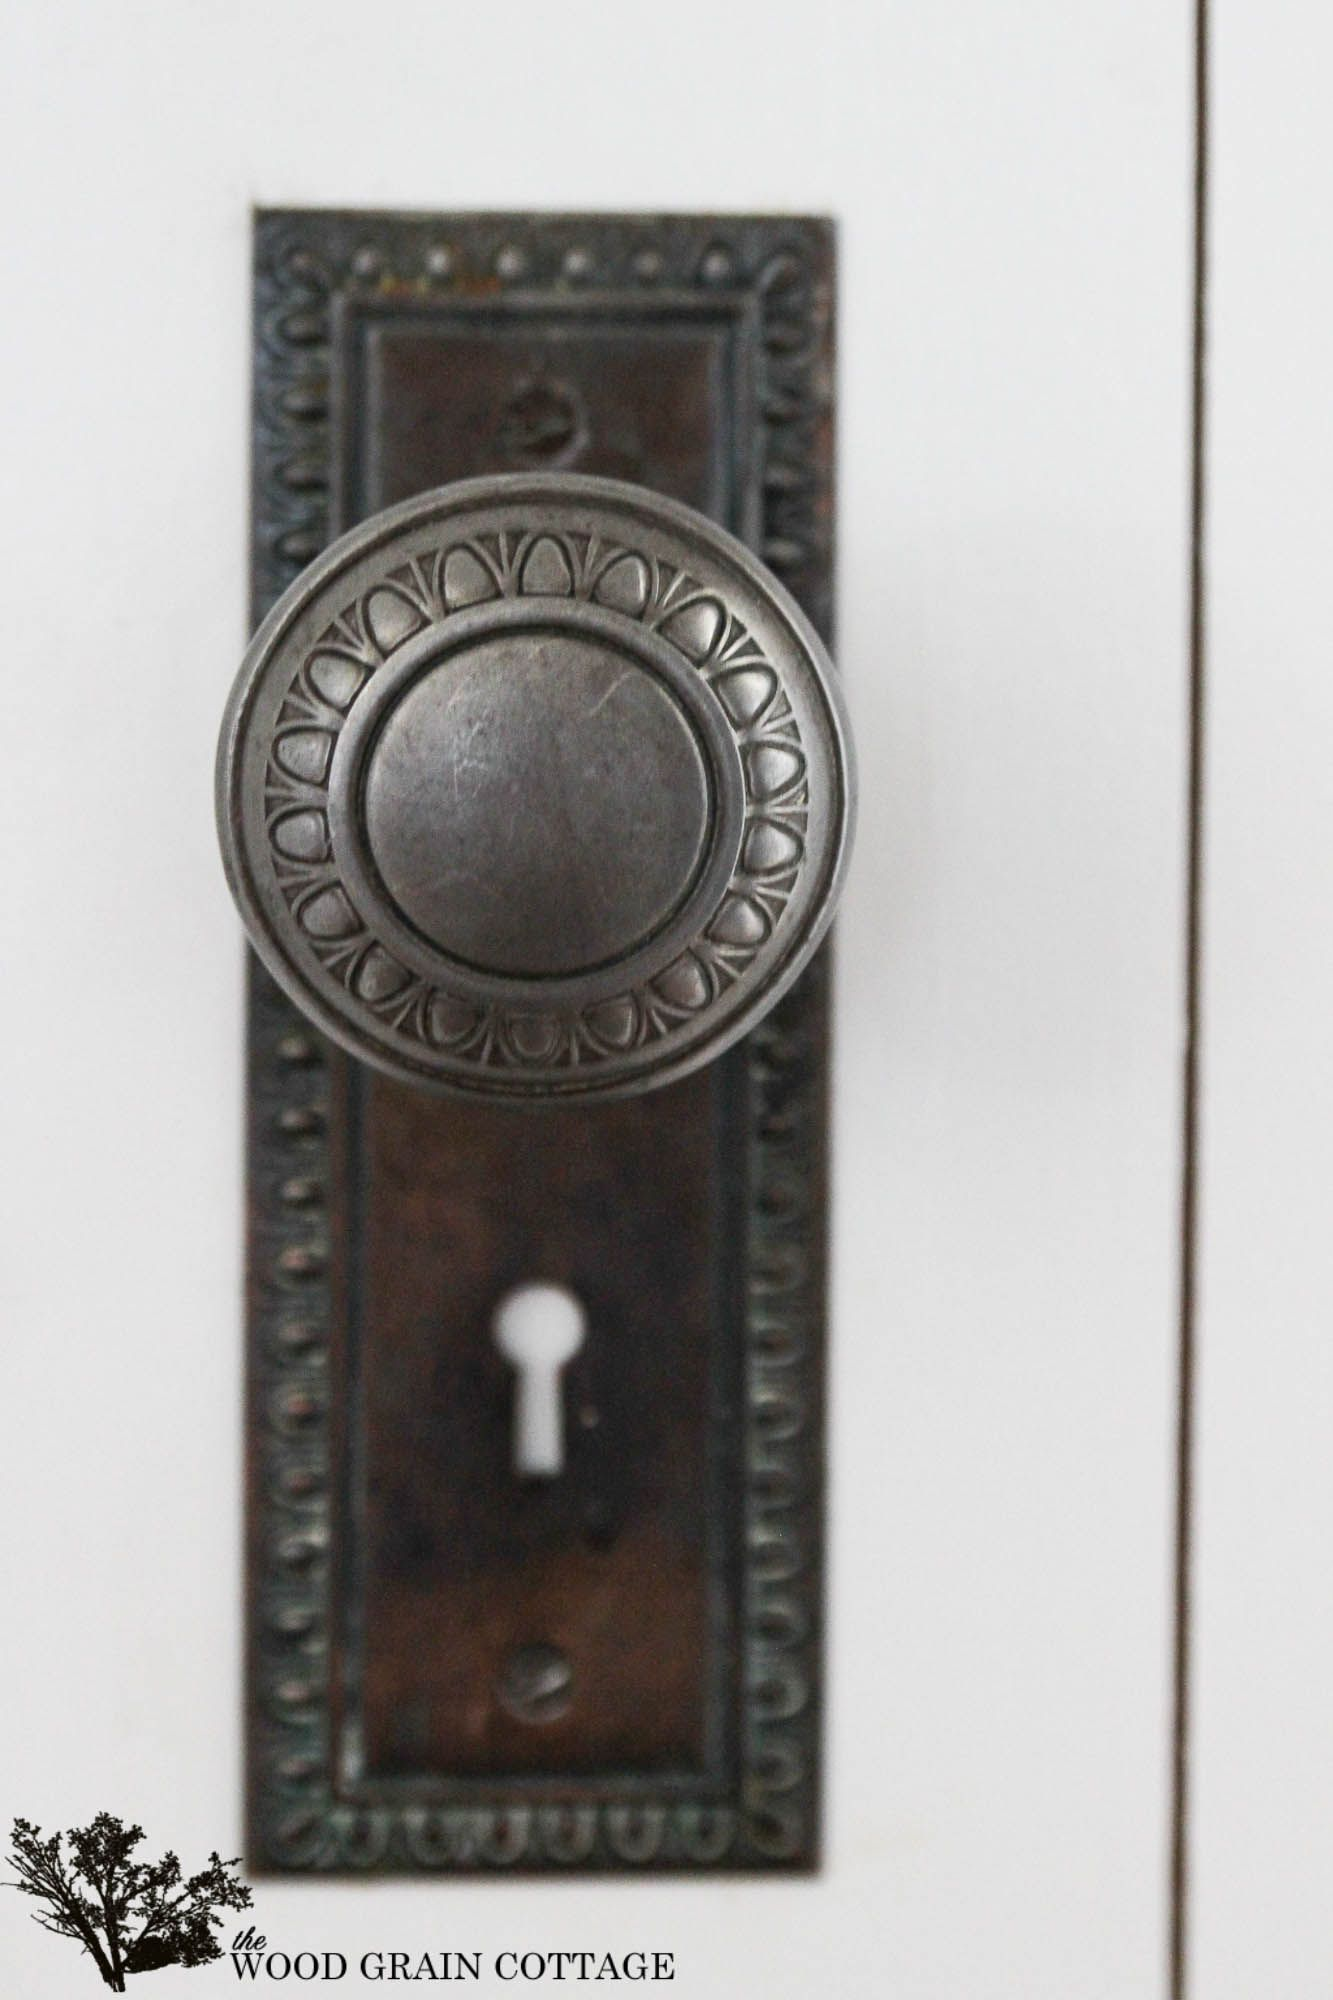 How to install a vintage door knob on a new door by The Wood Grain Cottage - Adding Character With A Vintage Door Knob Hardware Pinterest